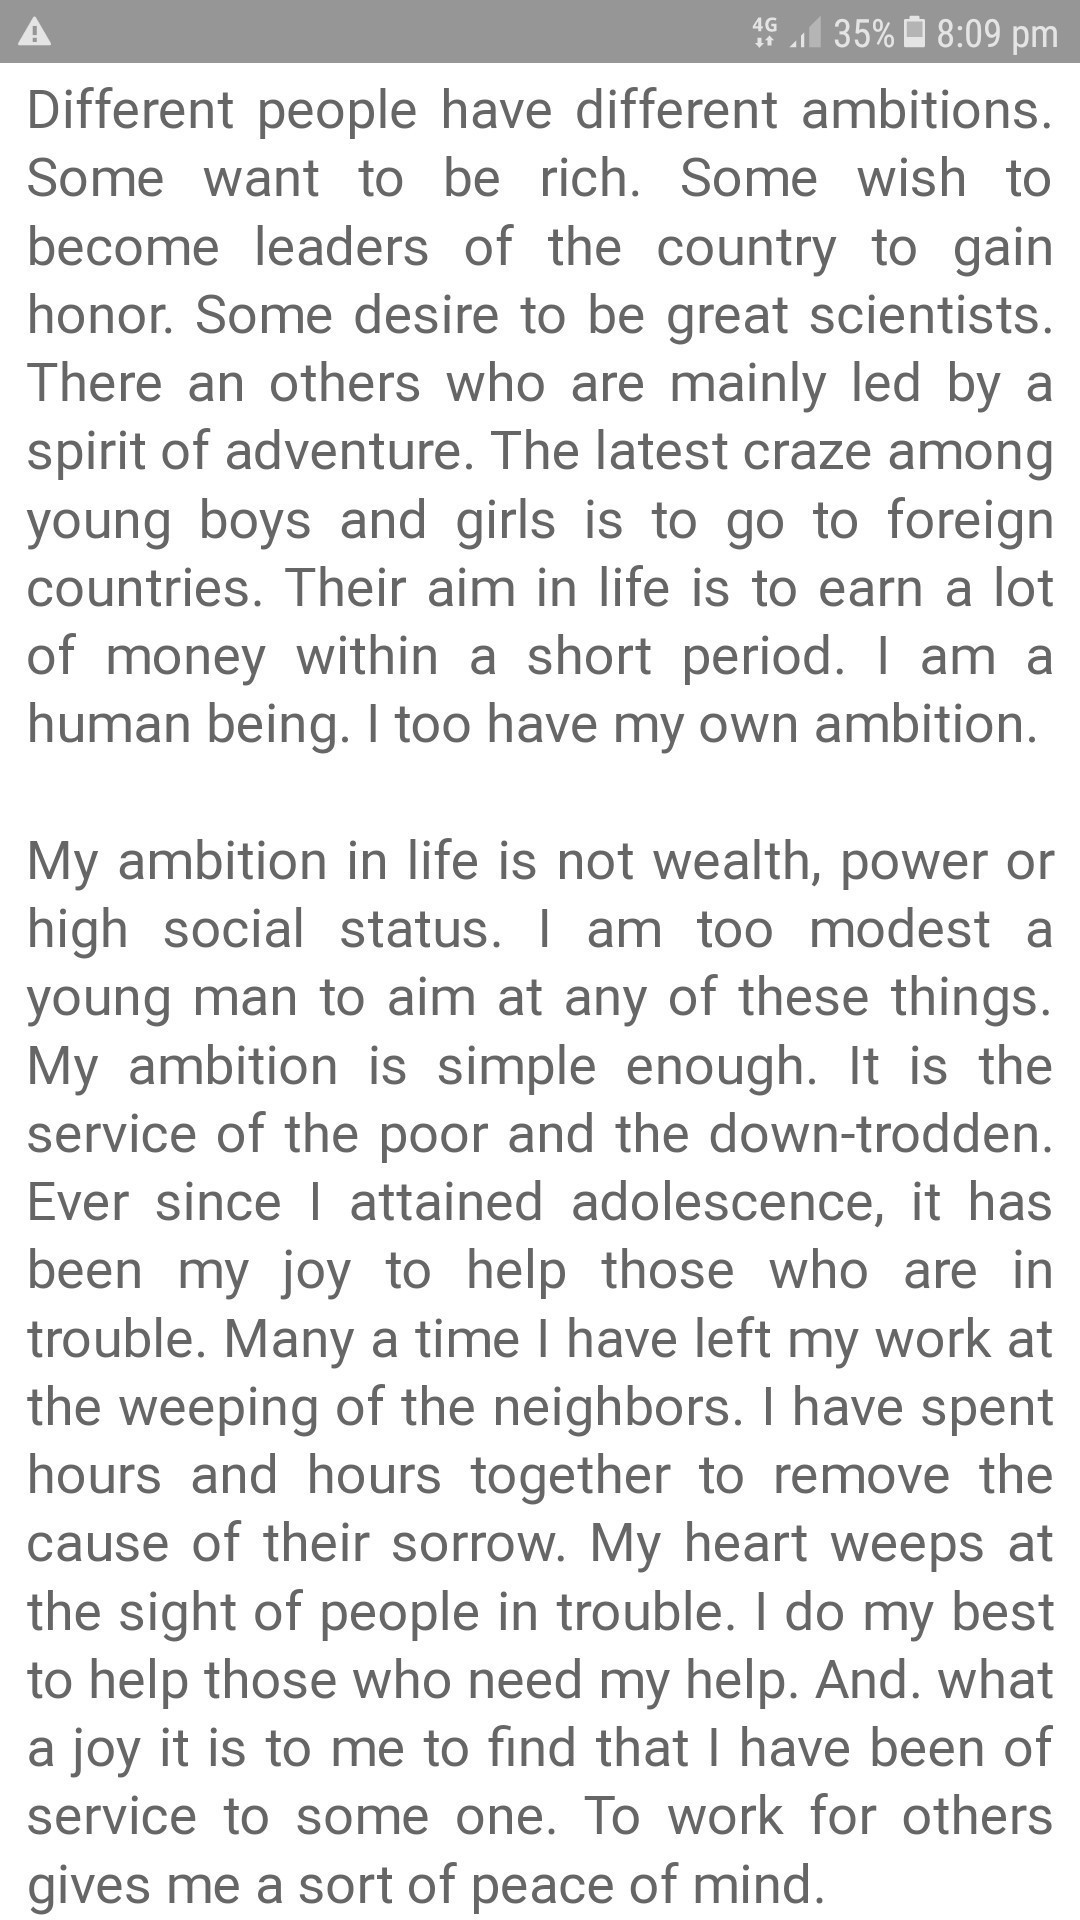 008 Essay Example Of Ambition Awesome On Lady Macbeth's Short My Life To Become A Pilot Full